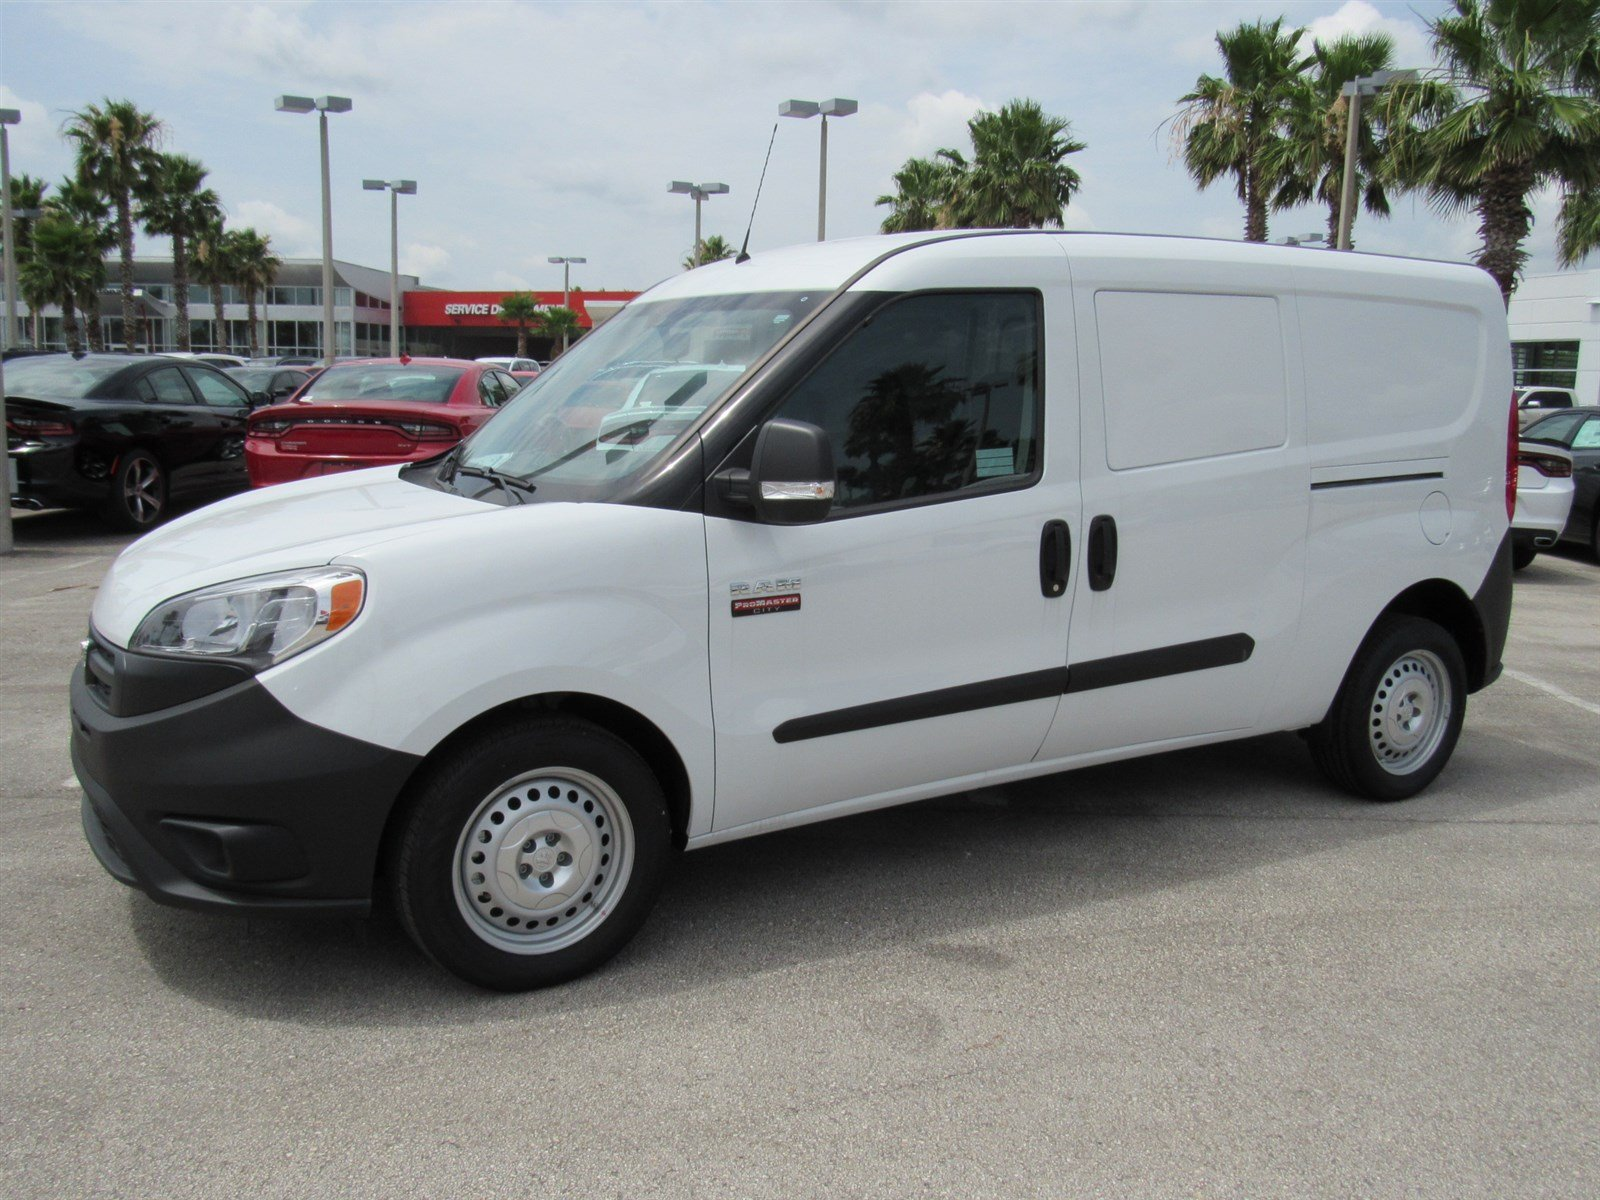 new 2017 ram promaster city cargo van tradesman cargo van in daytona beach r17363 daytona. Black Bedroom Furniture Sets. Home Design Ideas